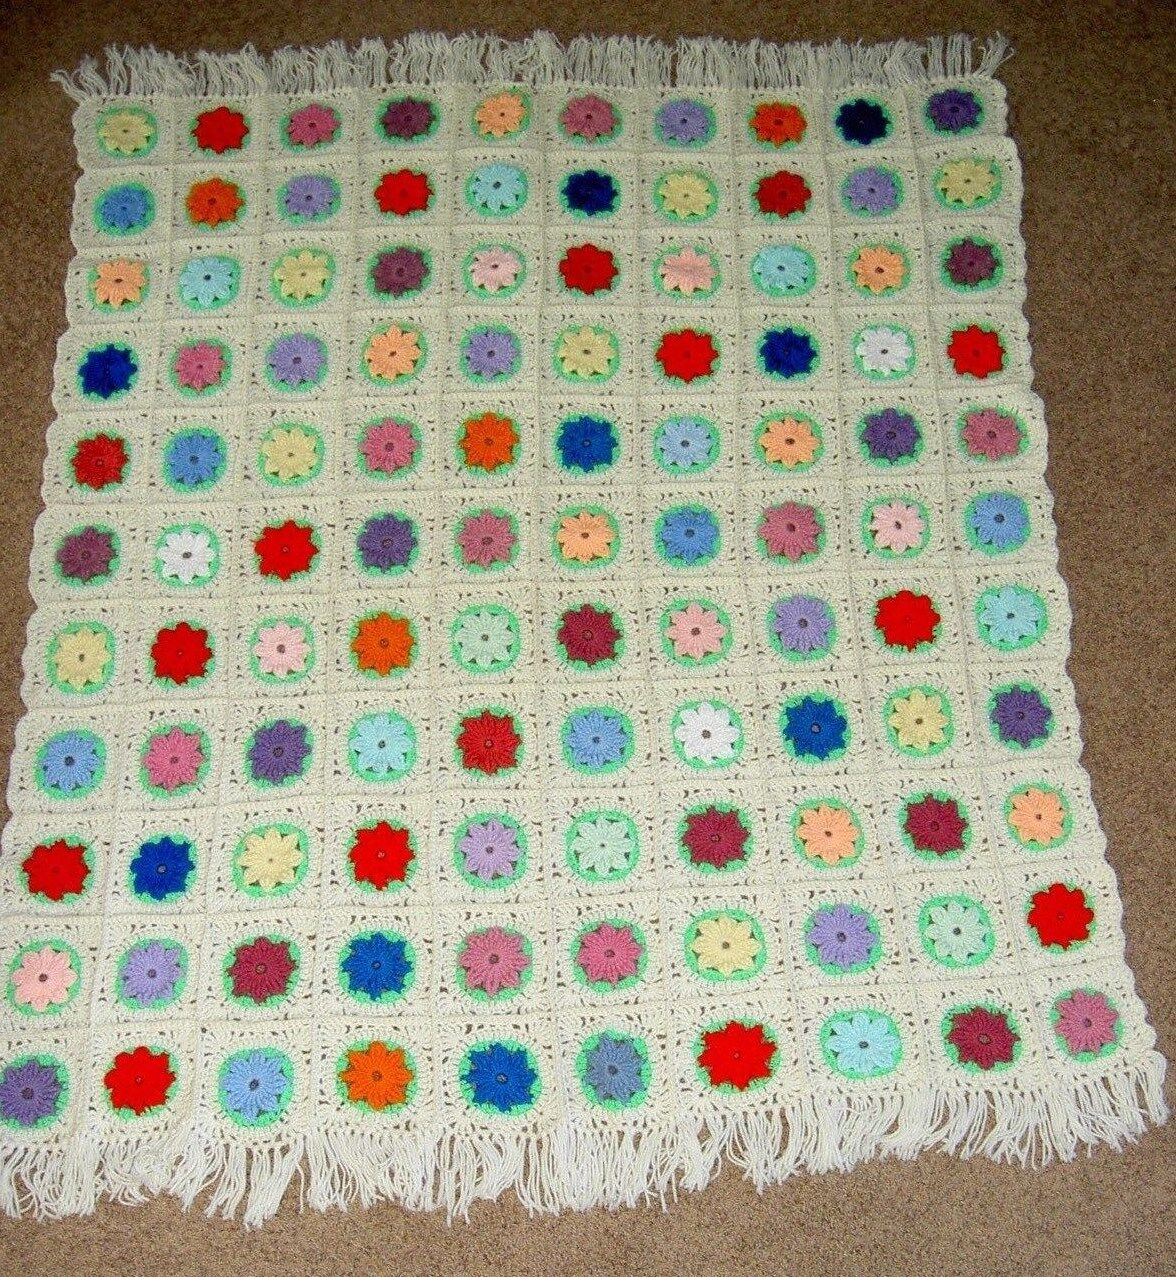 Vintage HANDMADE CROCHETED Cream Multi color Afghan Blanket Throw NEVER USED